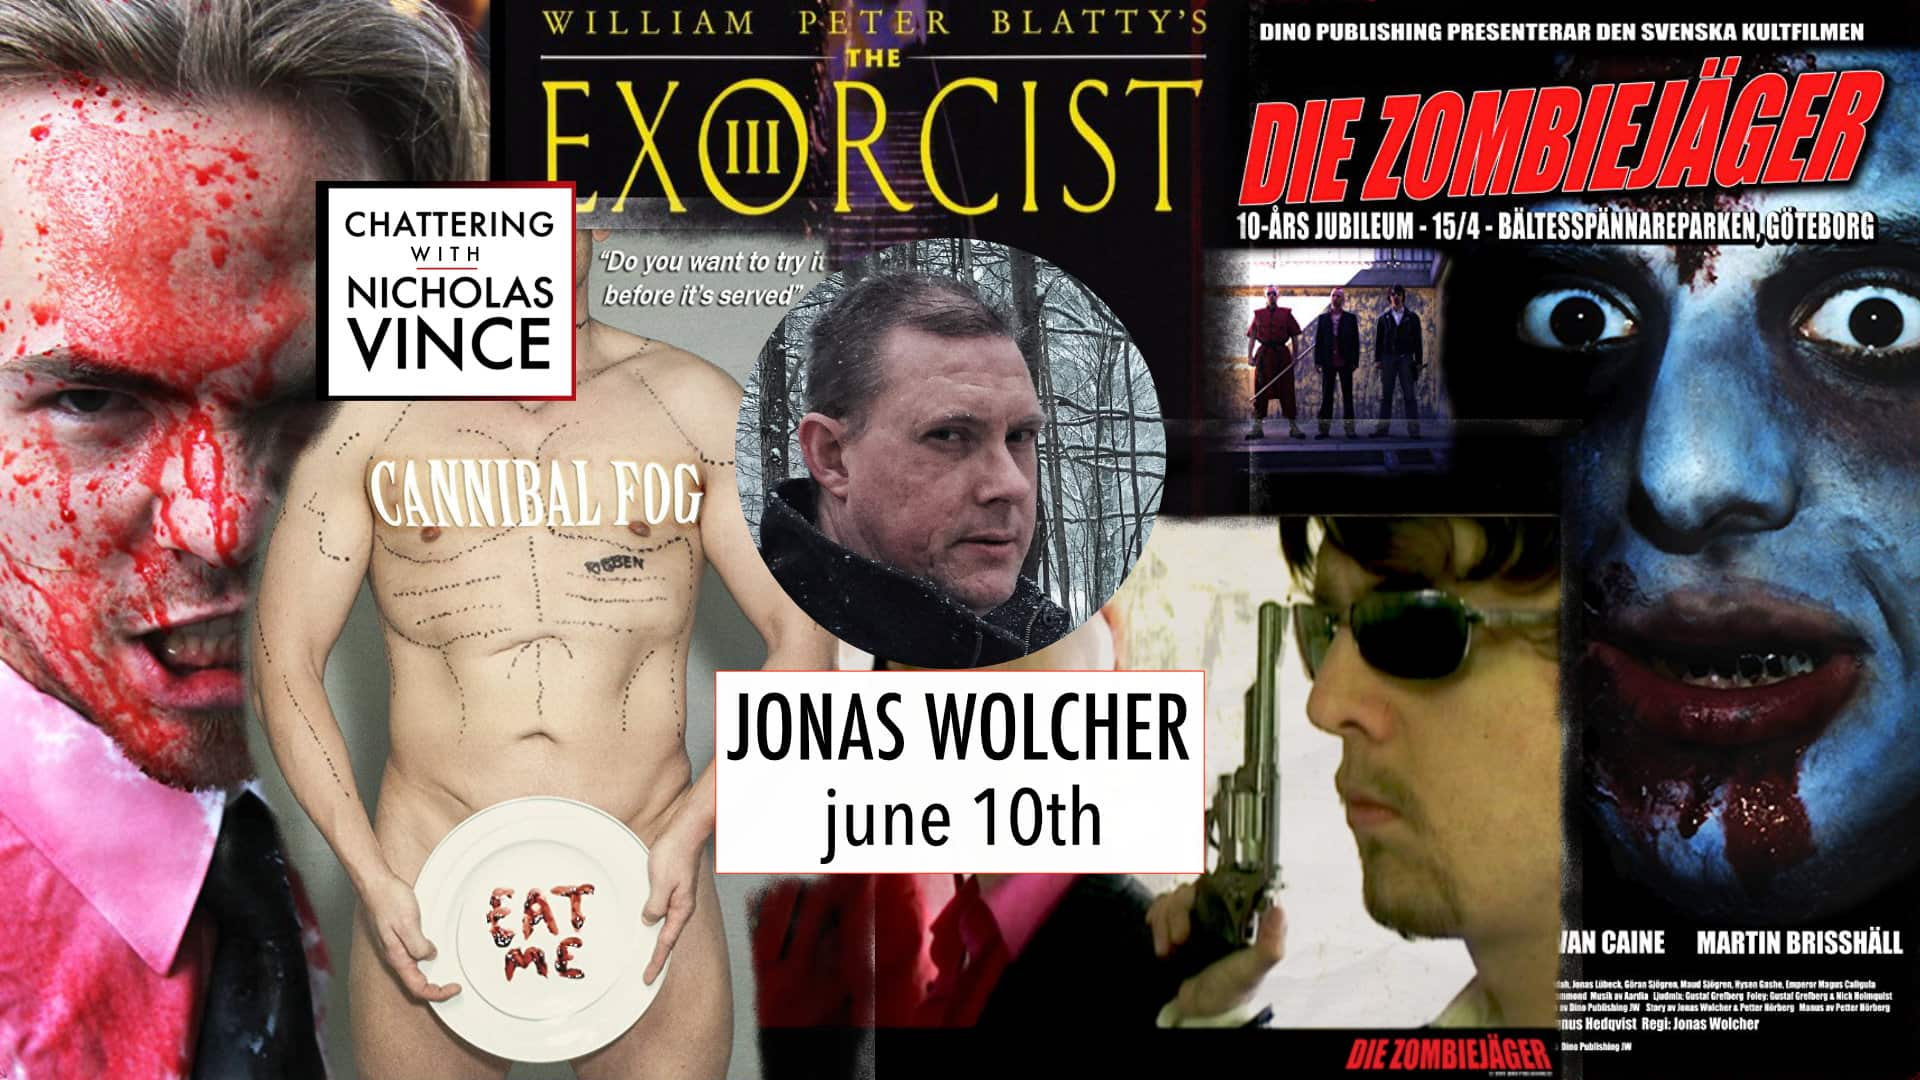 Chattering with Jonas Wolcher